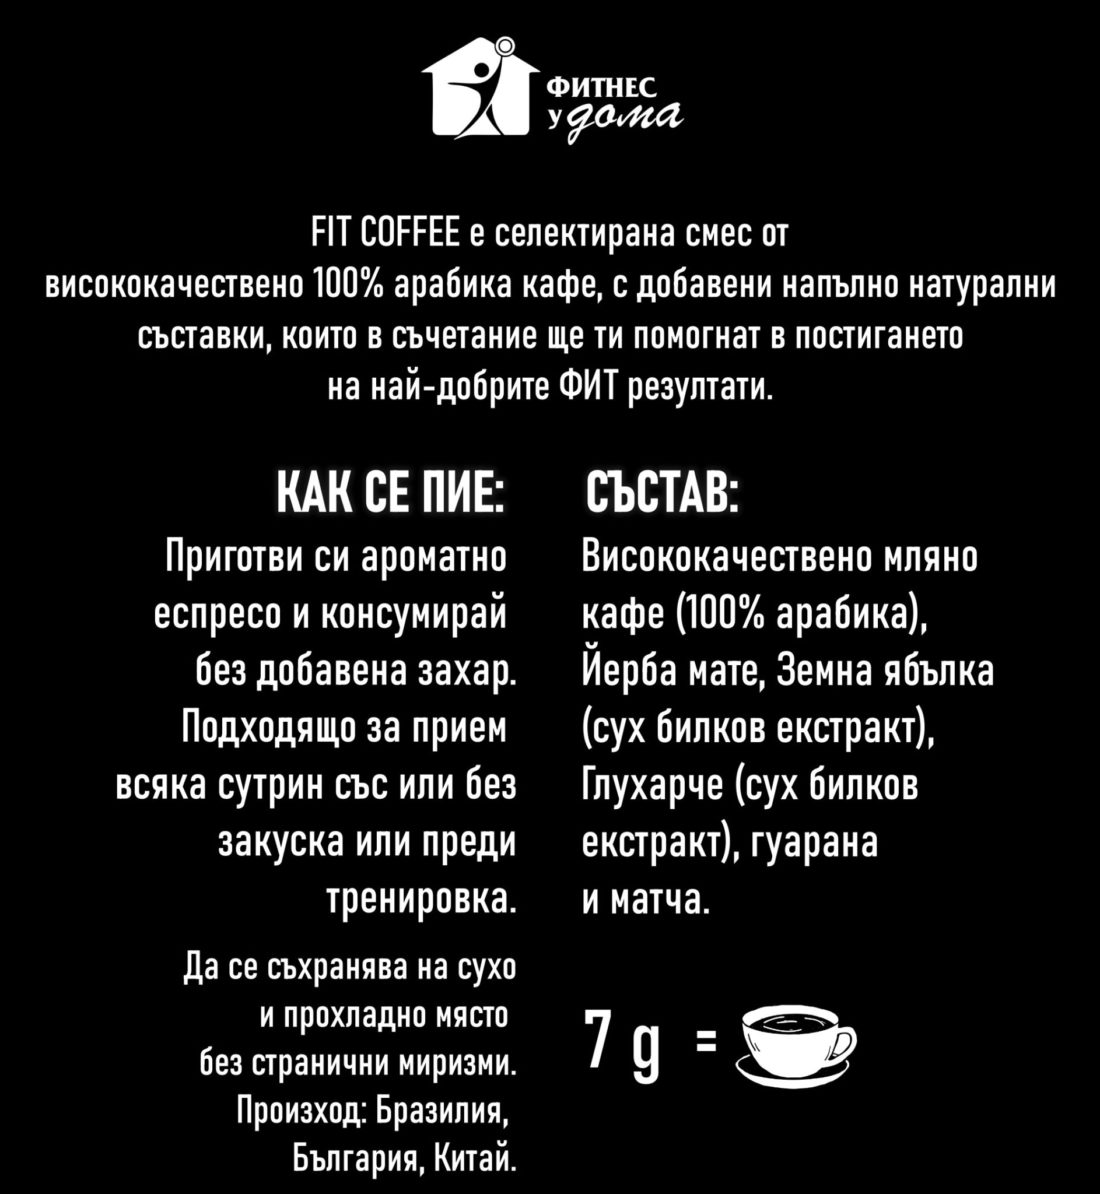 FIT COFFEE